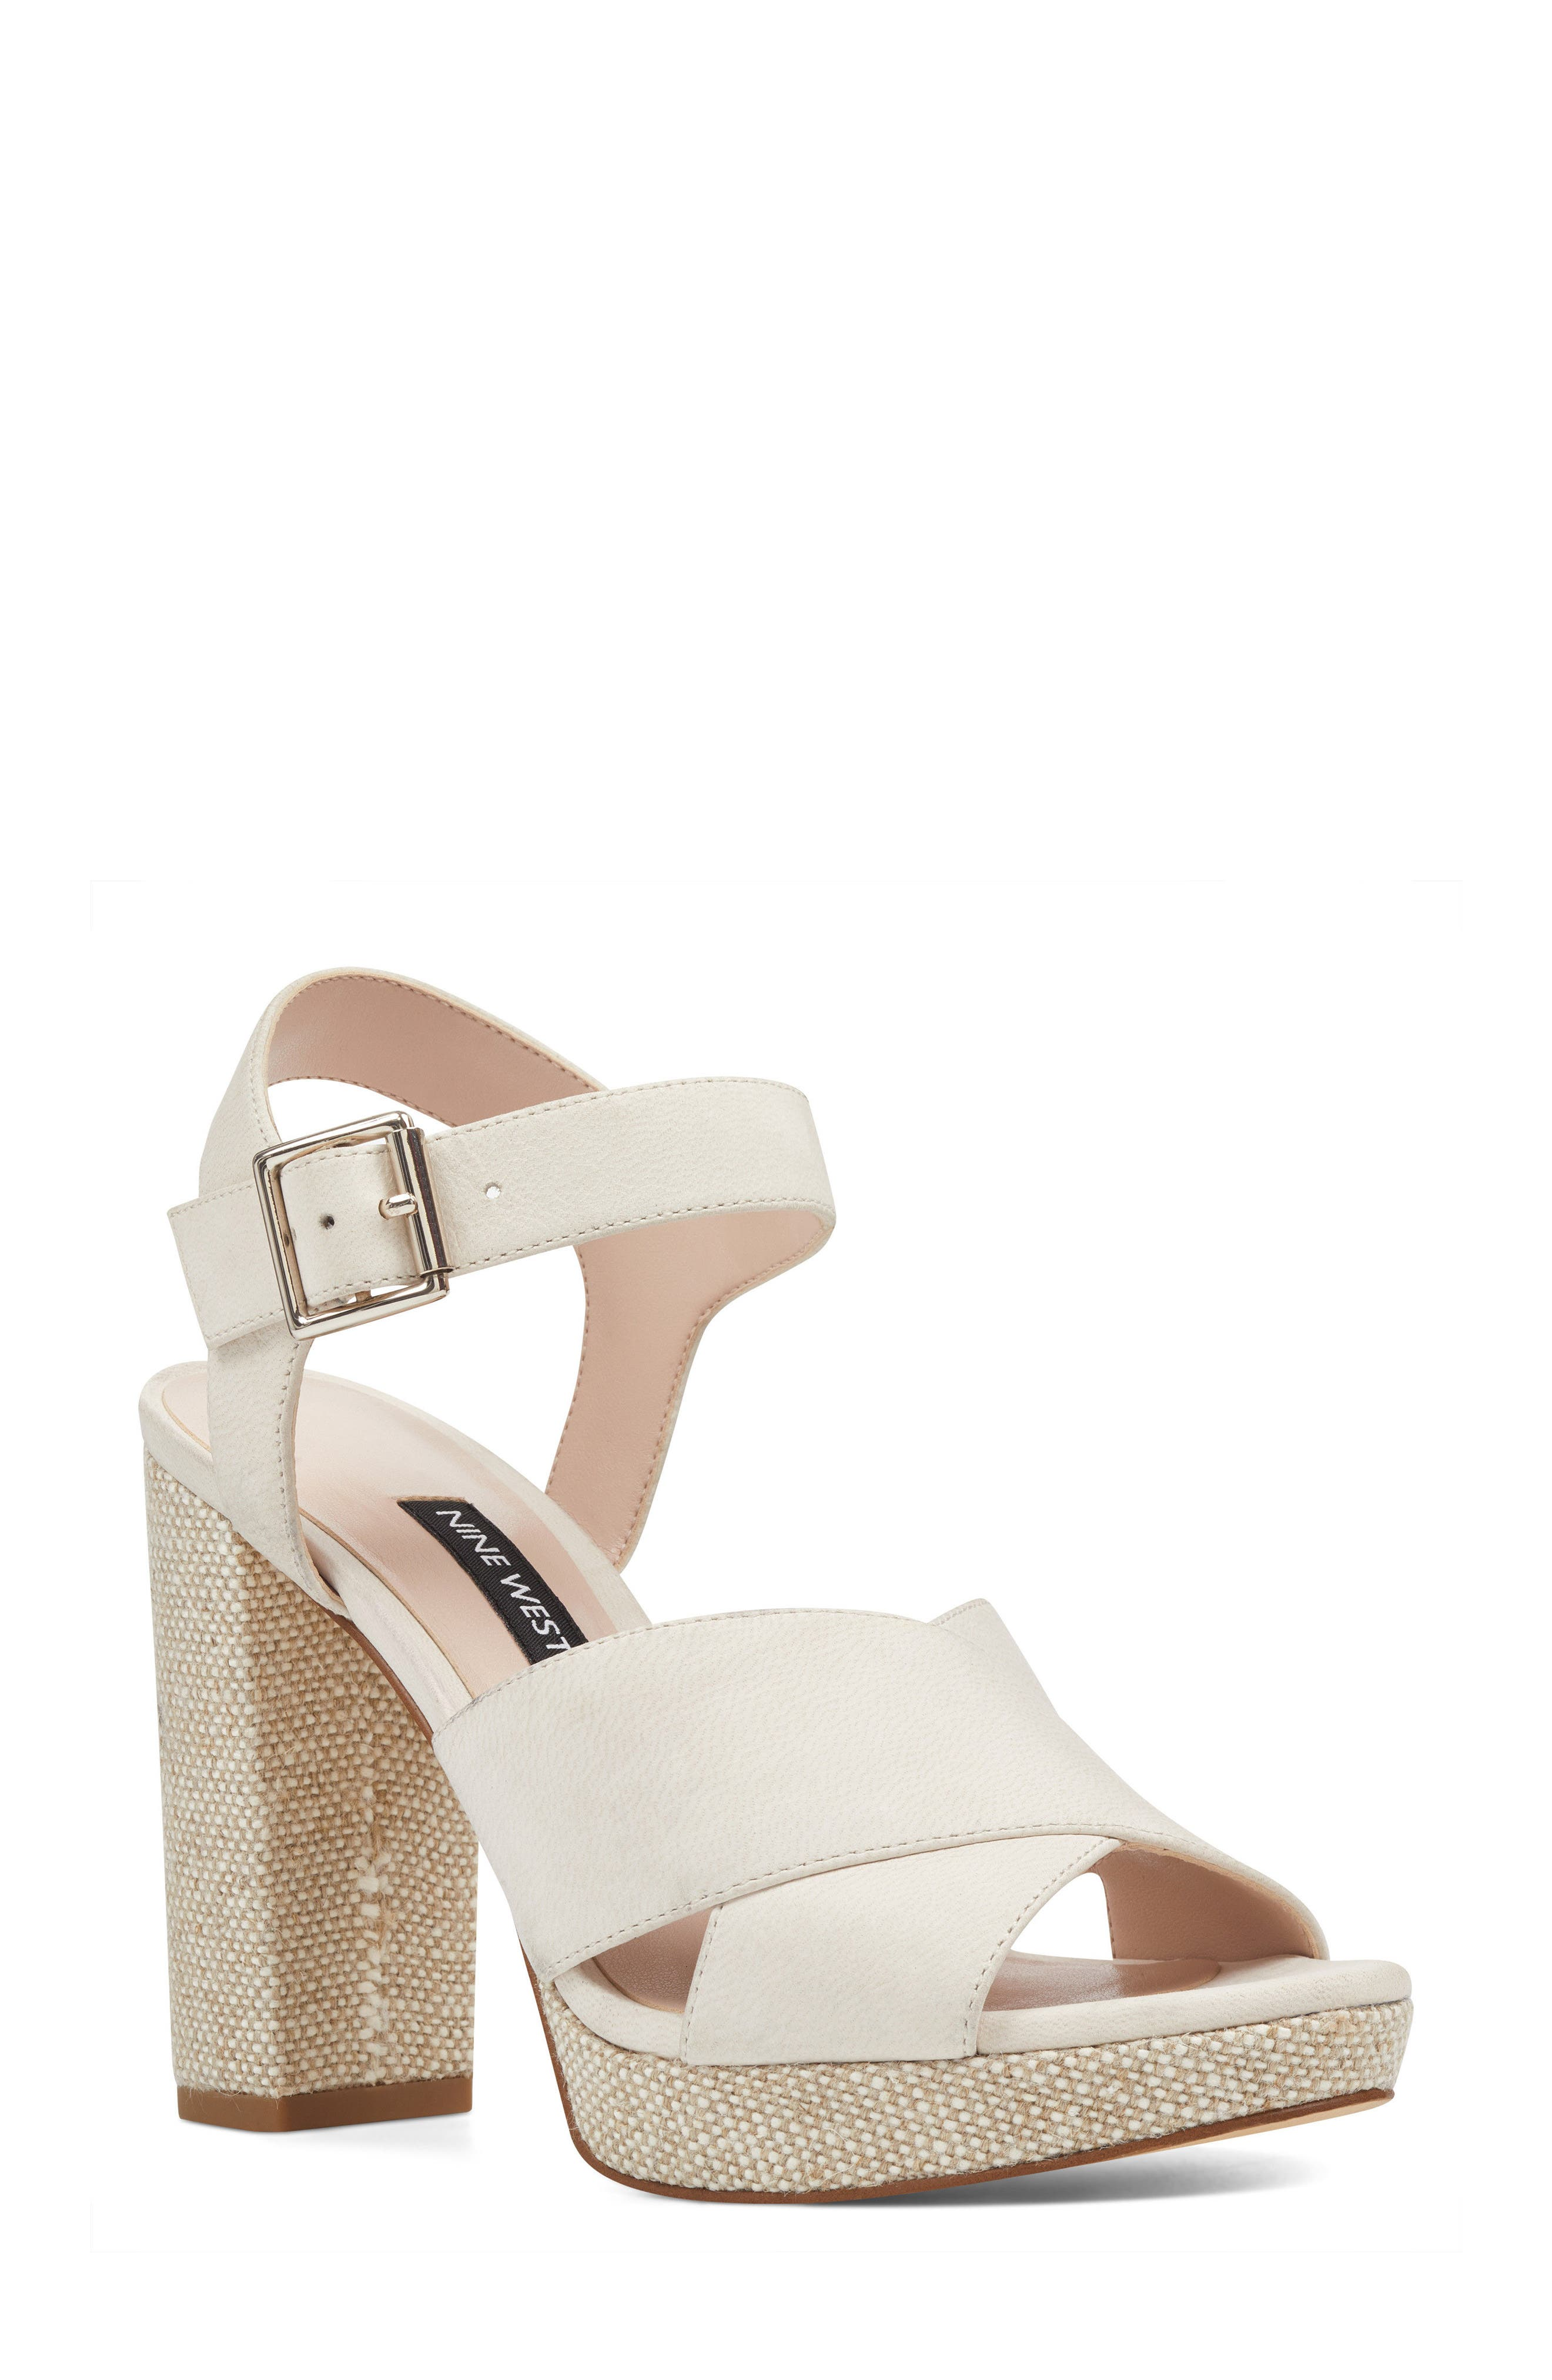 Jimar Platform Sandal,                         Main,                         color, 100